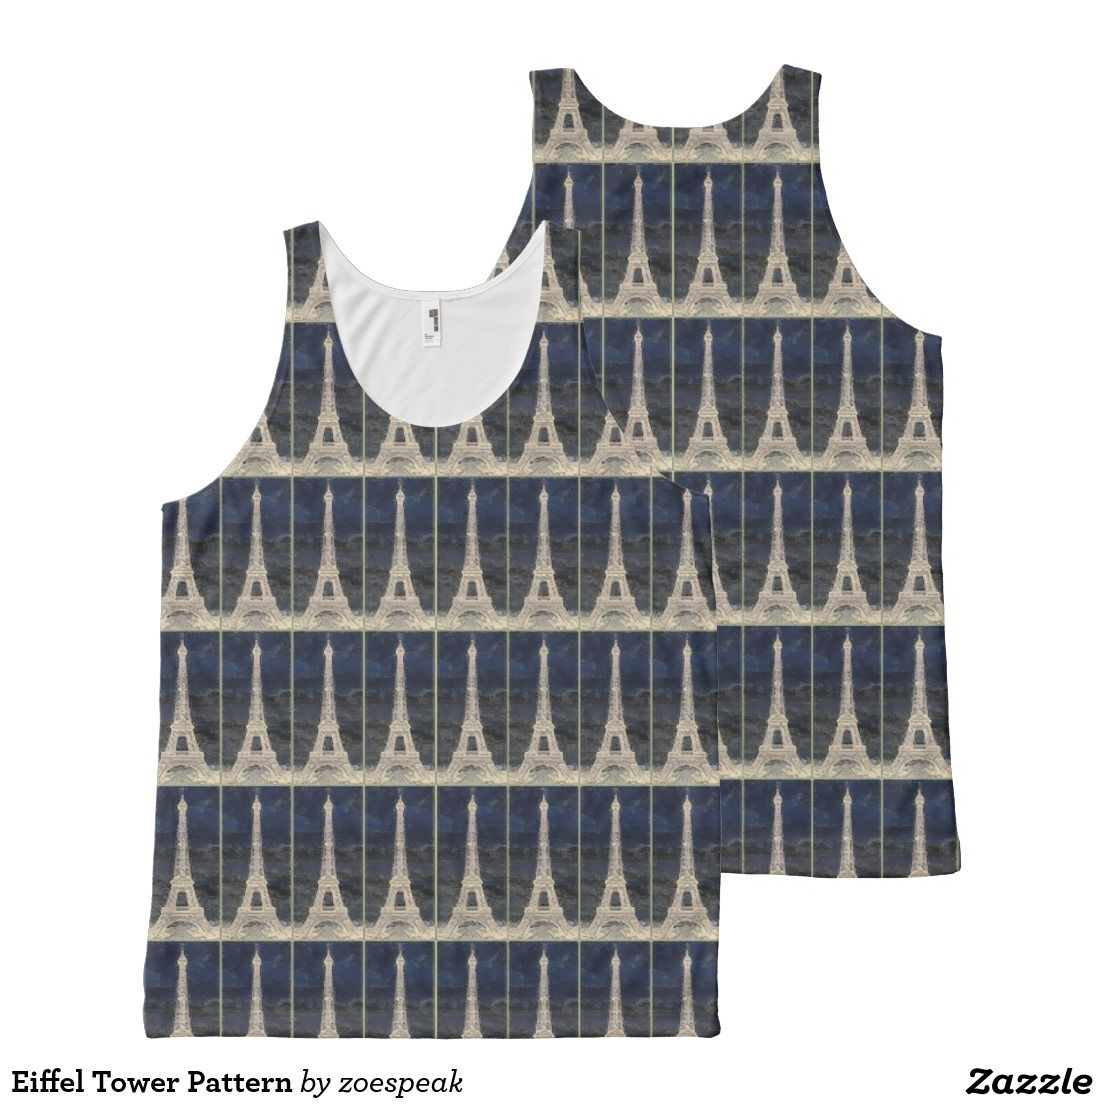 Eiffel Tower Pattern, All-Over Printed Unisex Tank Top from ZoeSPEAK.